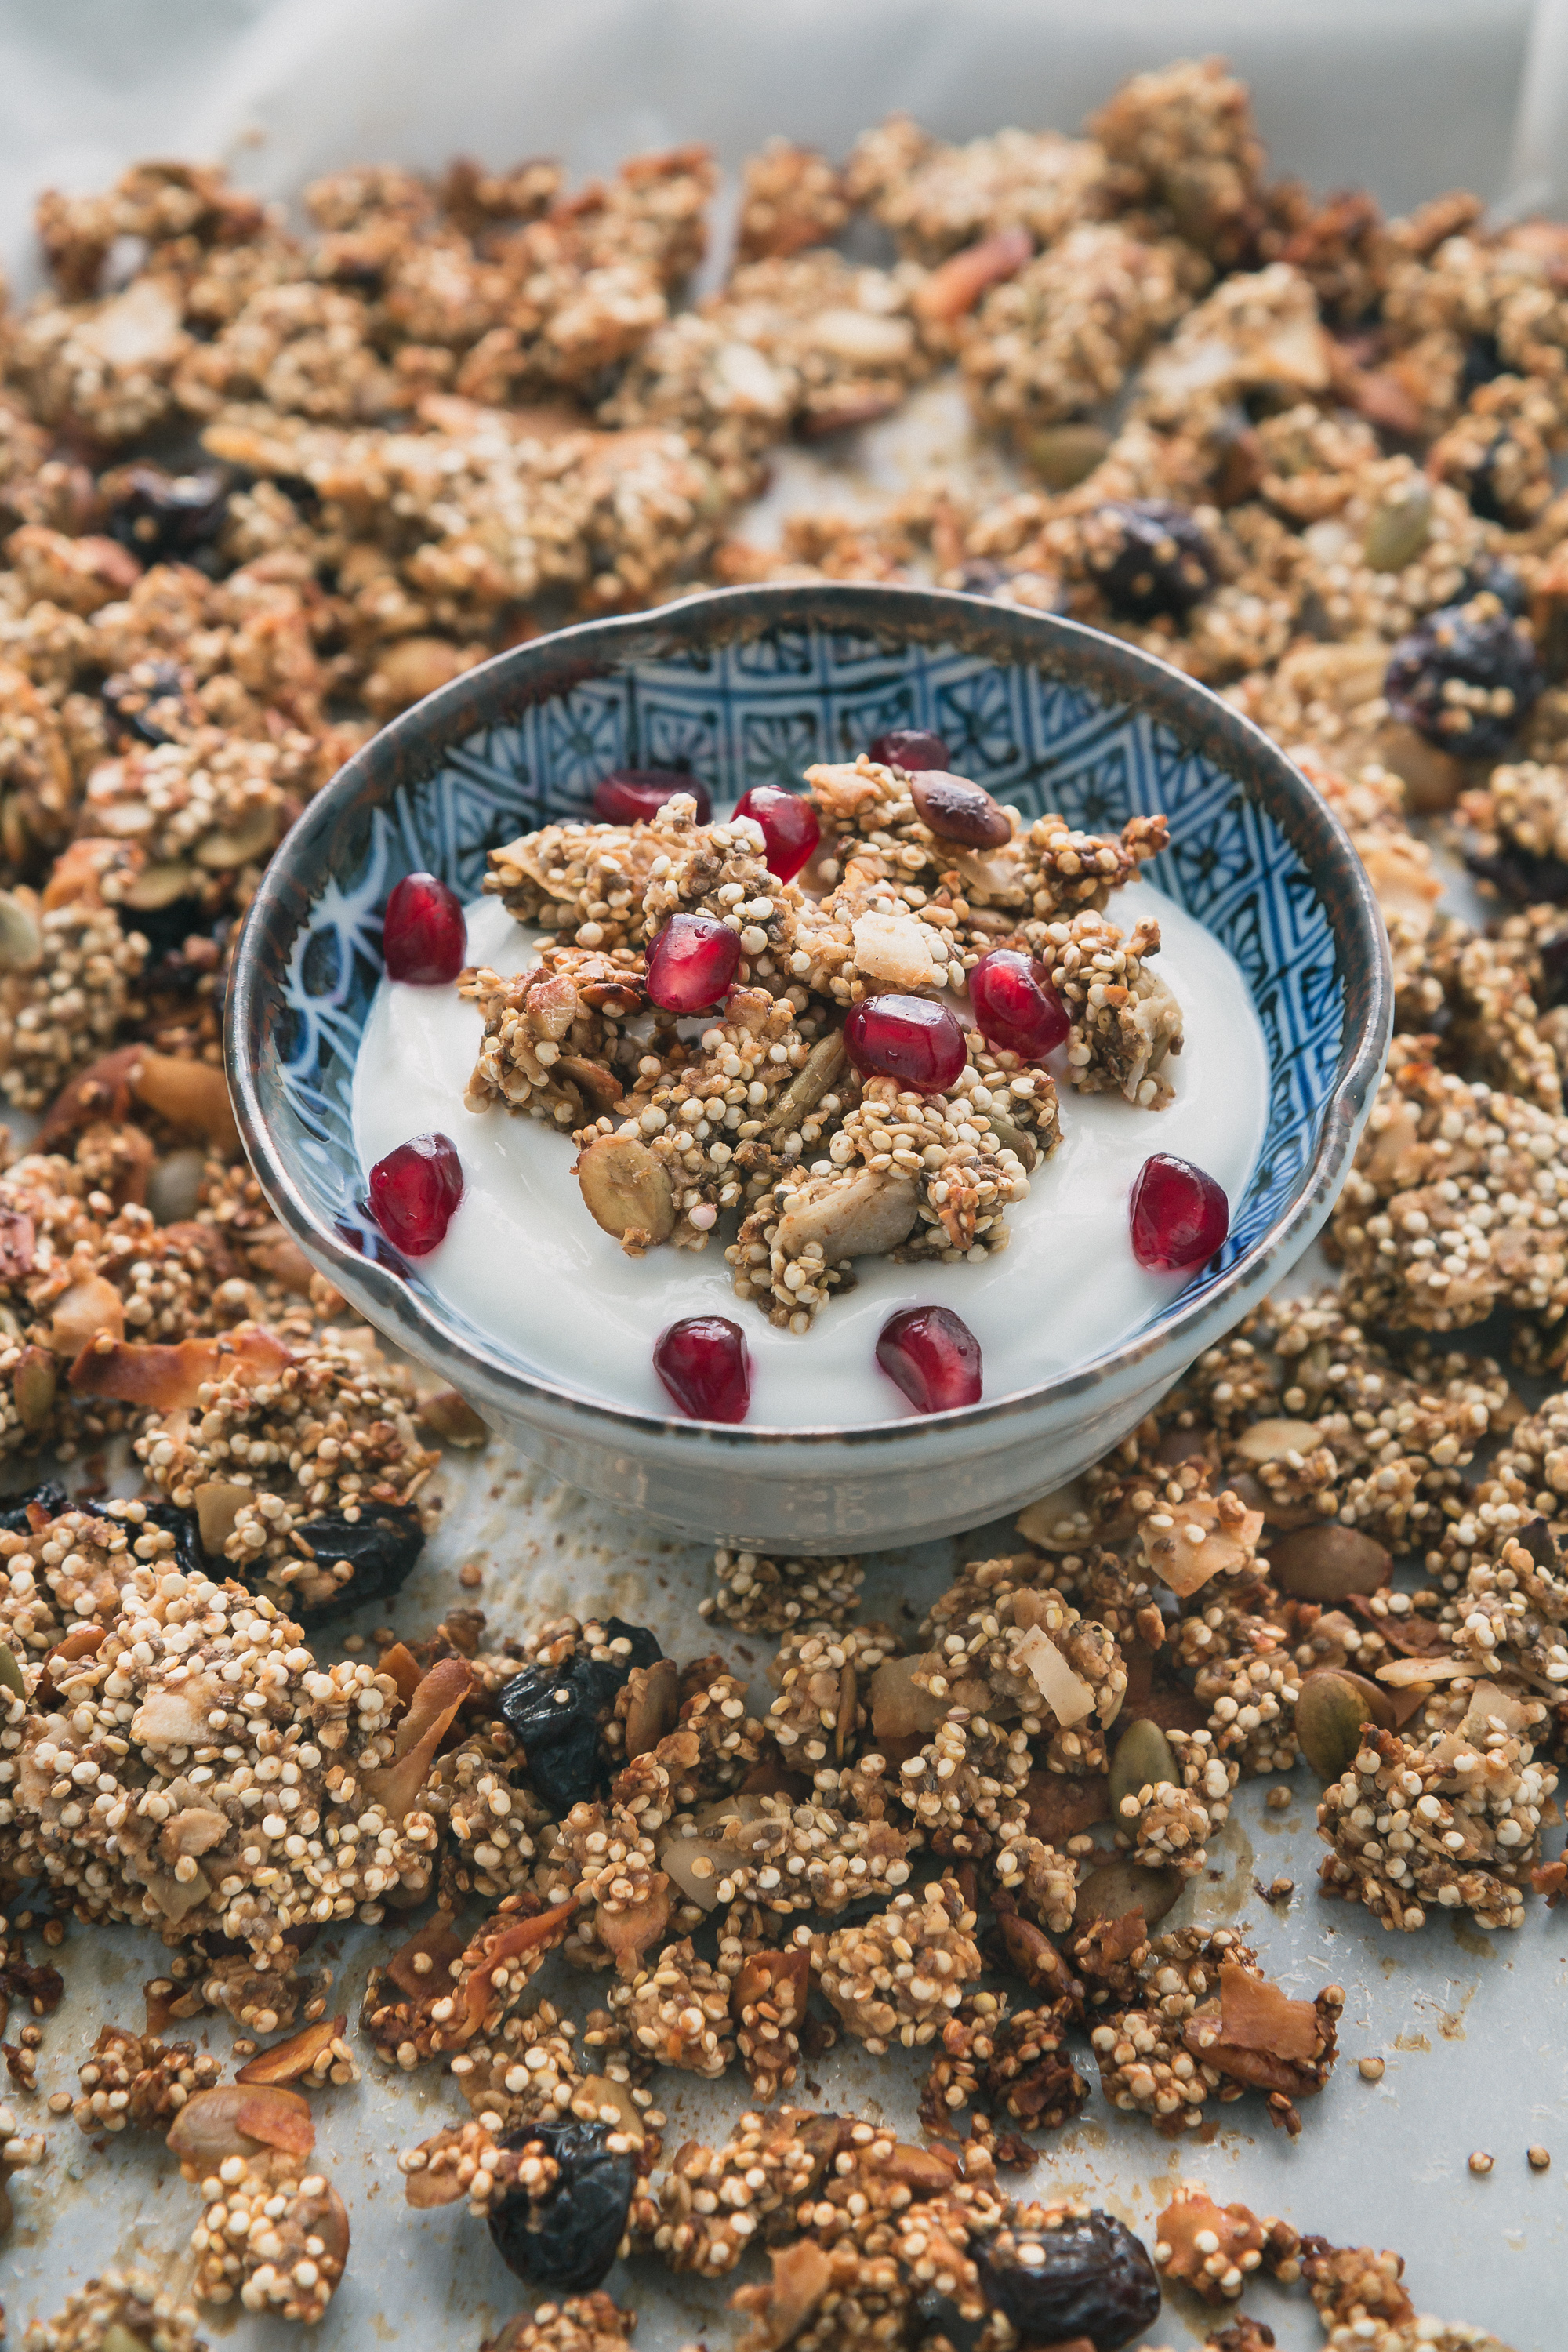 Crunchy Quinoa Granola - Granola gets a healthier makeover with quinoa & other wholesome clean ingredients such as pumpkin seeds, cherries, chia seeds & coconut.